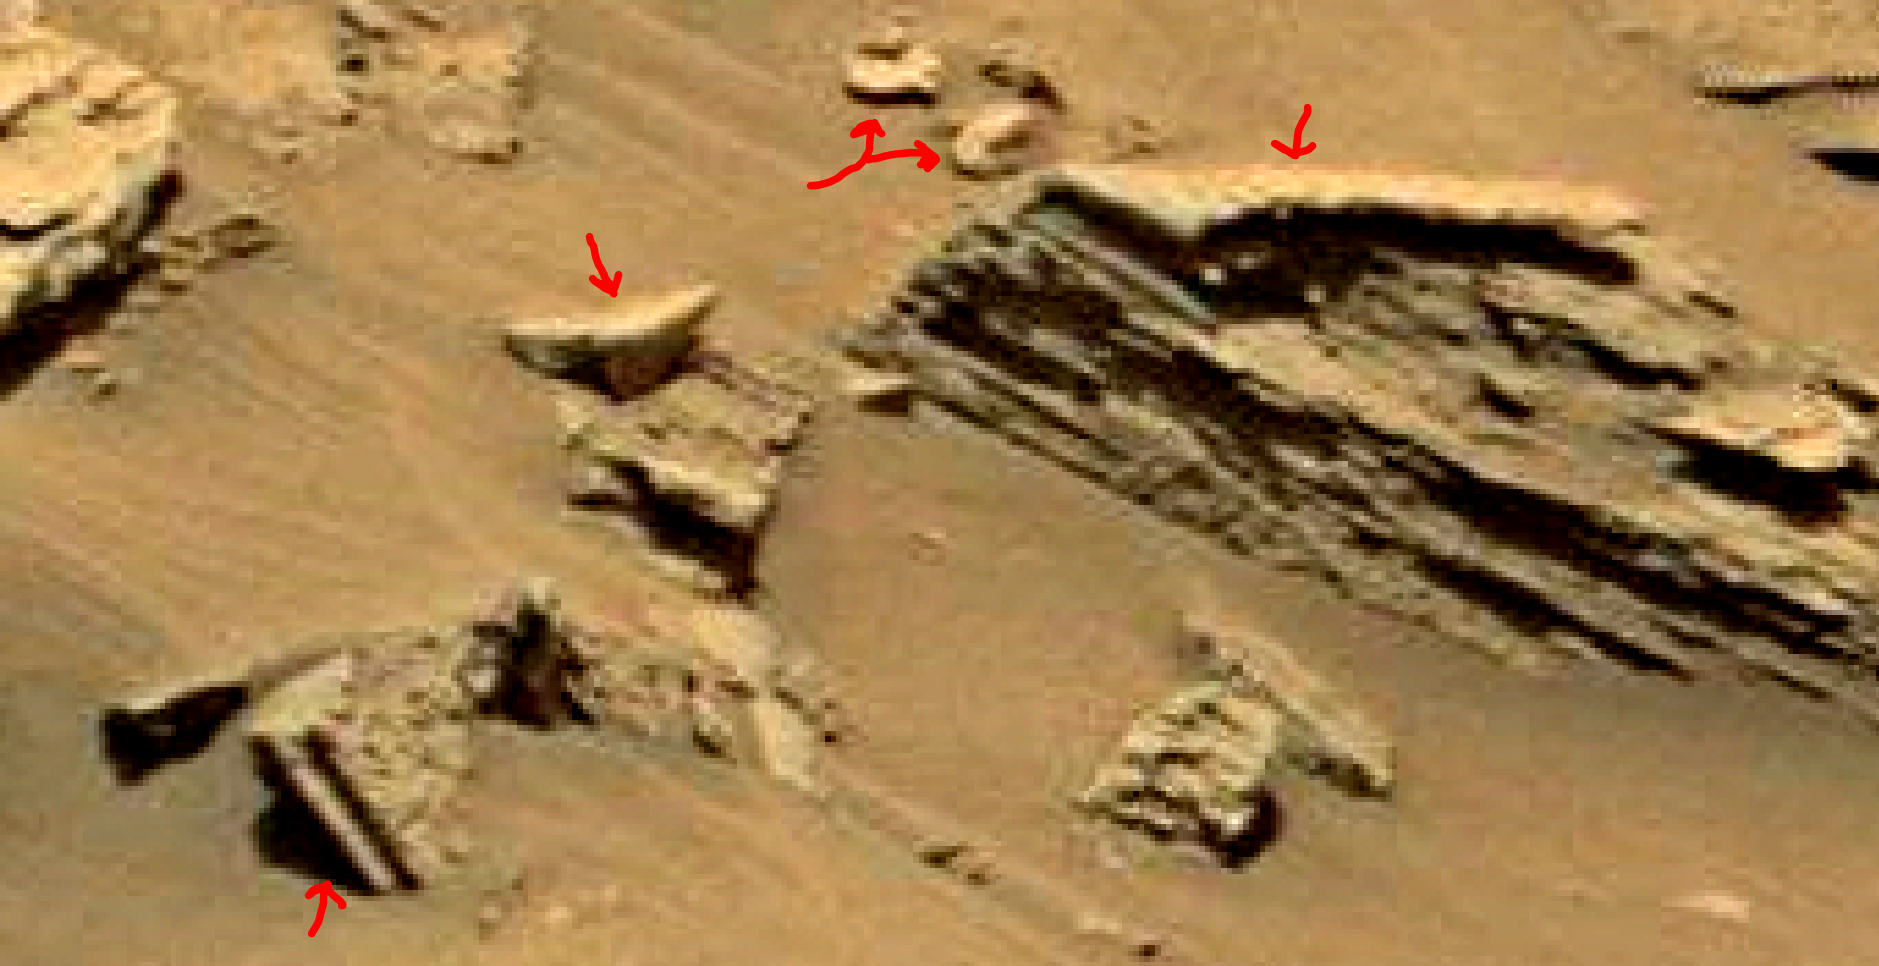 mars sol 1353 anomaly-artifacts 19a was life on mars